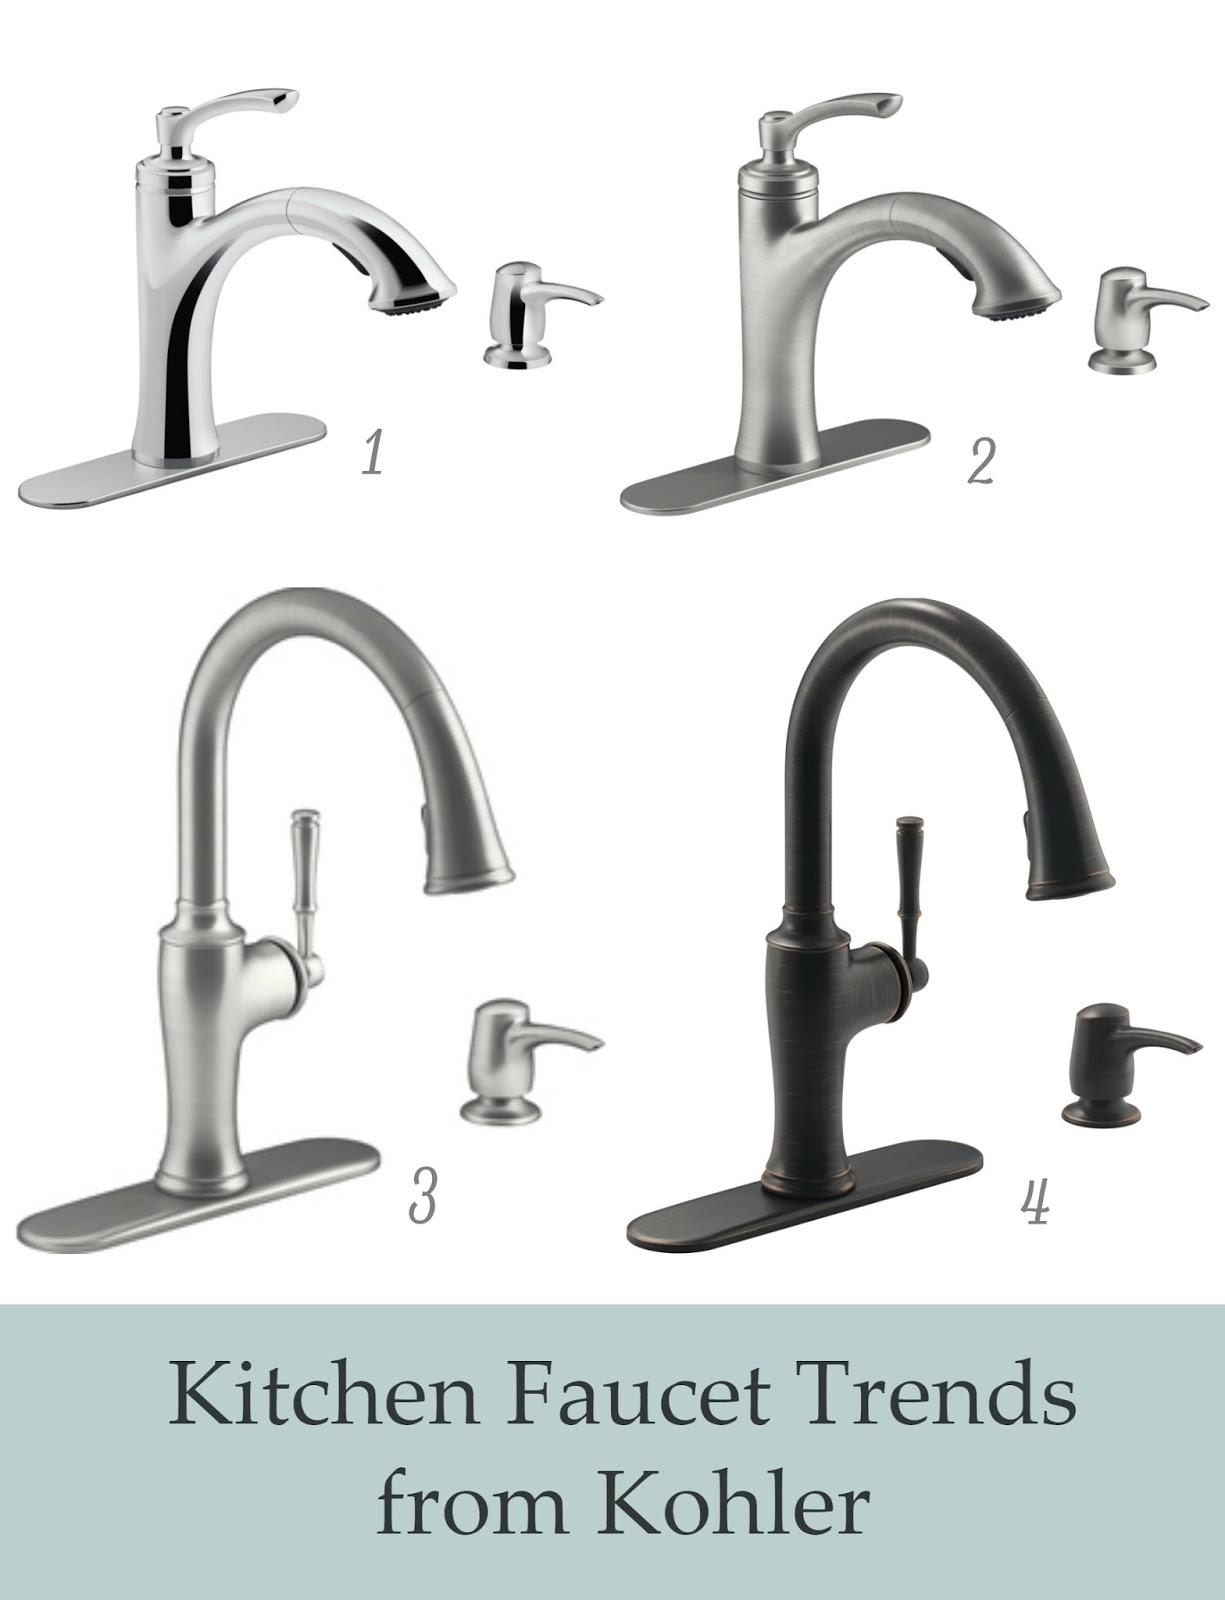 basement kitchen inspiration starts 22 kohler kitchen faucets new faucets from Kohler available exclusively at Lowe s that would be perfect for the space as well And the best part is they don t break the bank